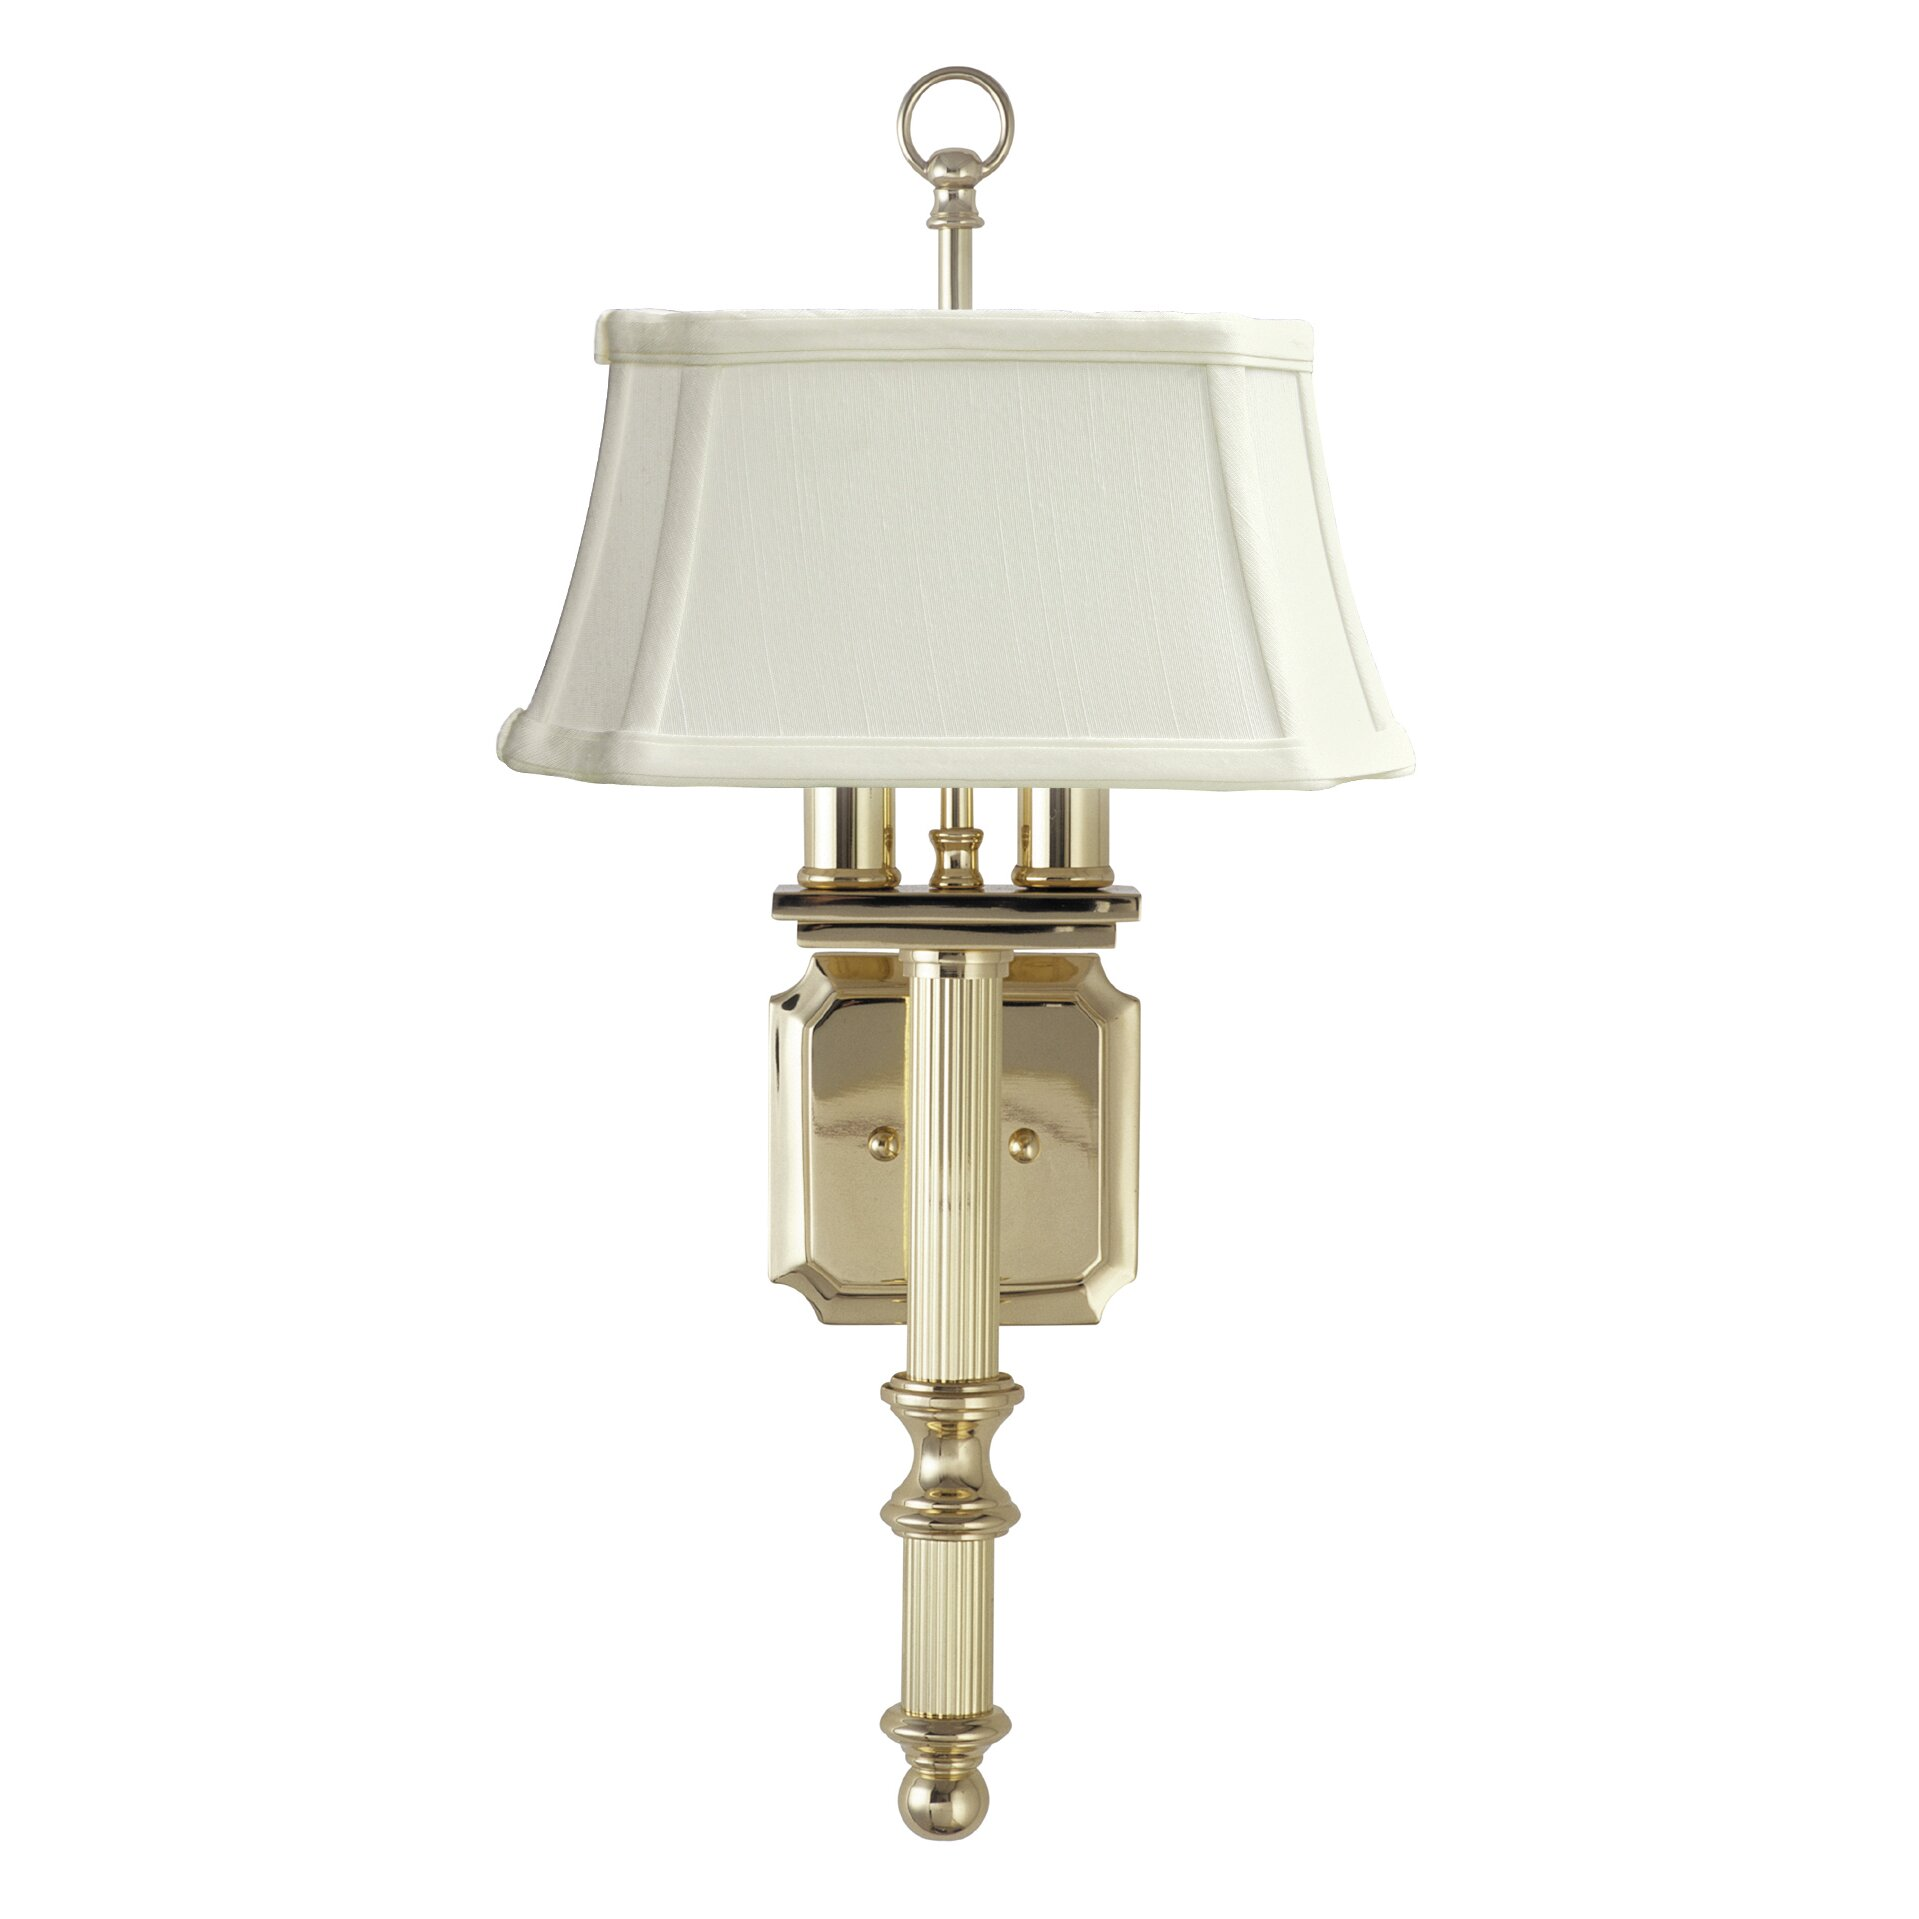 Wall Lamps Wayfair : House of Troy Wall Sconce & Reviews Wayfair